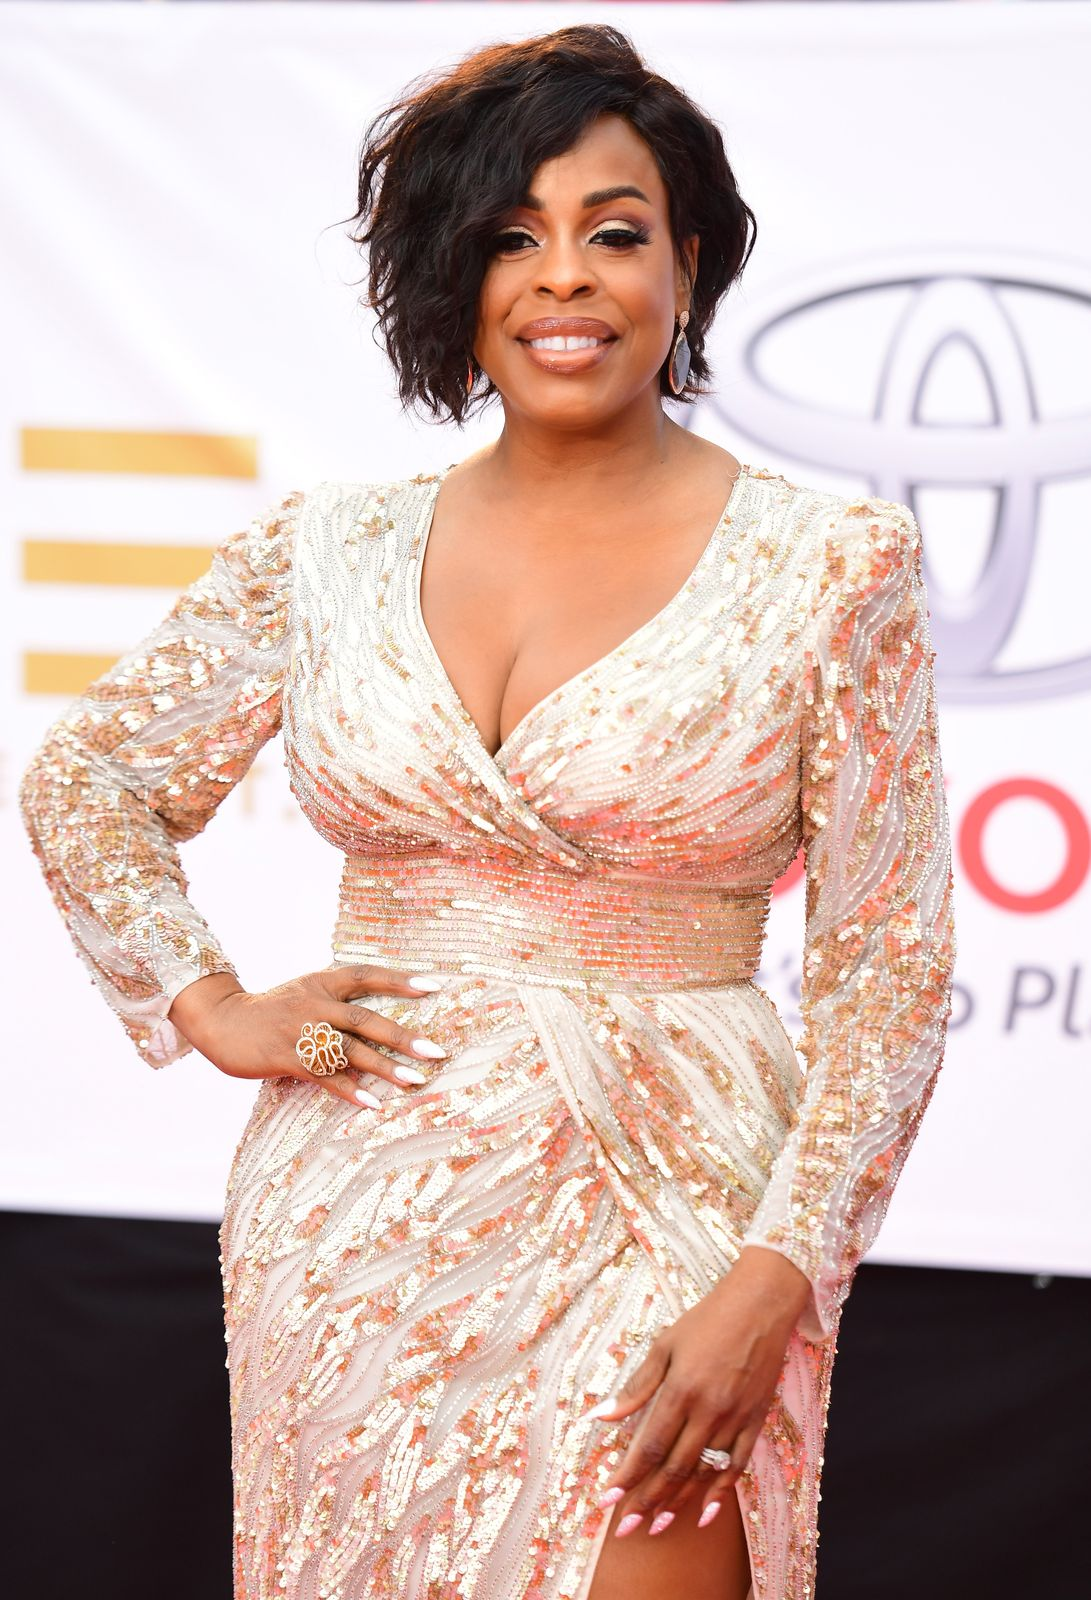 Niecy Nash attends the 49th NAACP Image Awards at Pasadena Civic Auditorium on January 15, 2018. | Photo: Getty Images